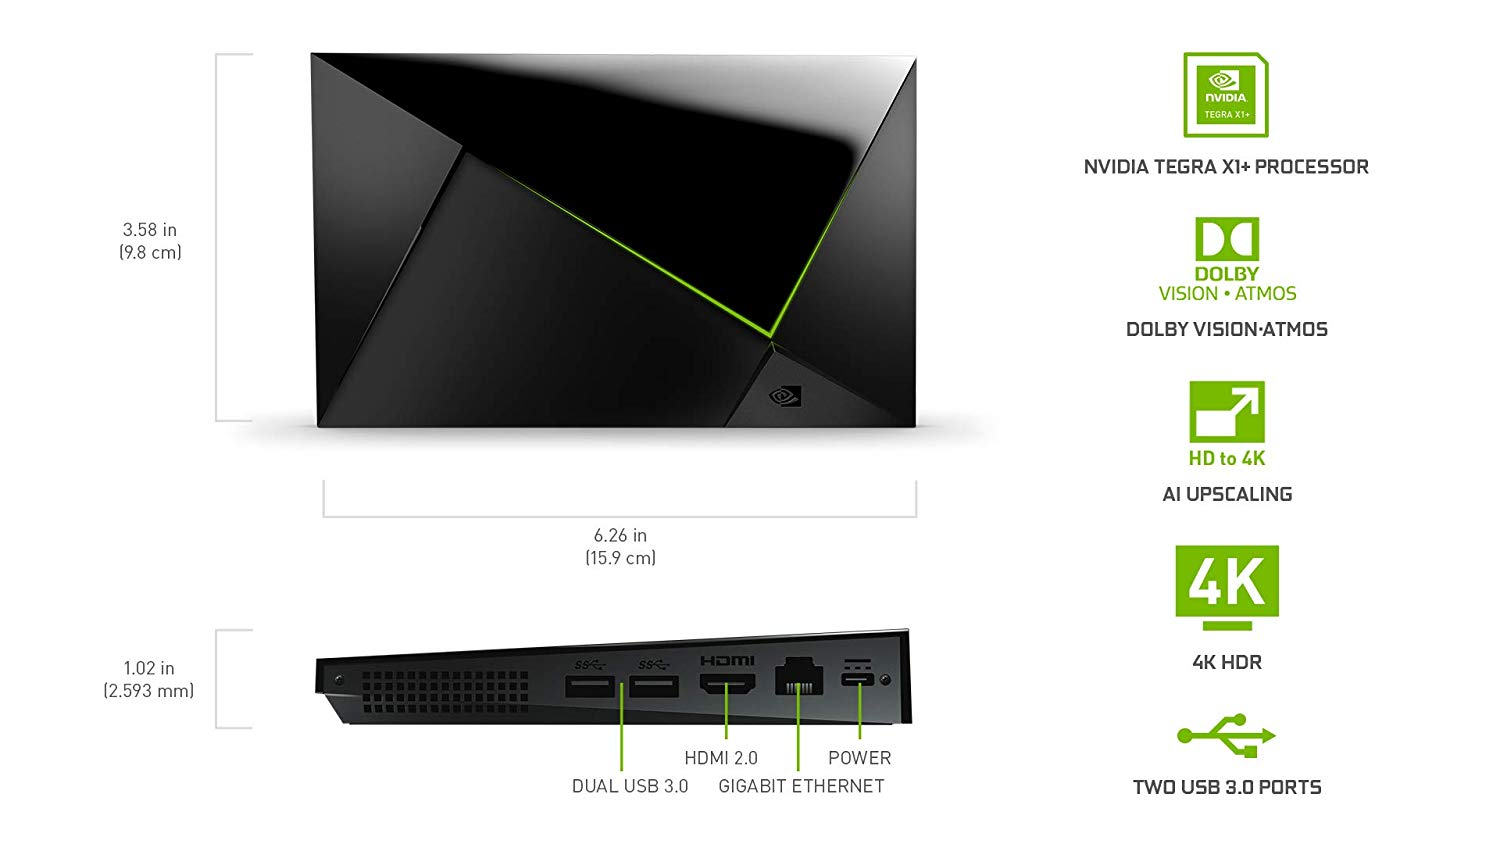 New NVIDIA SHIELD TV Design Leaks With A Totally Tubular Look